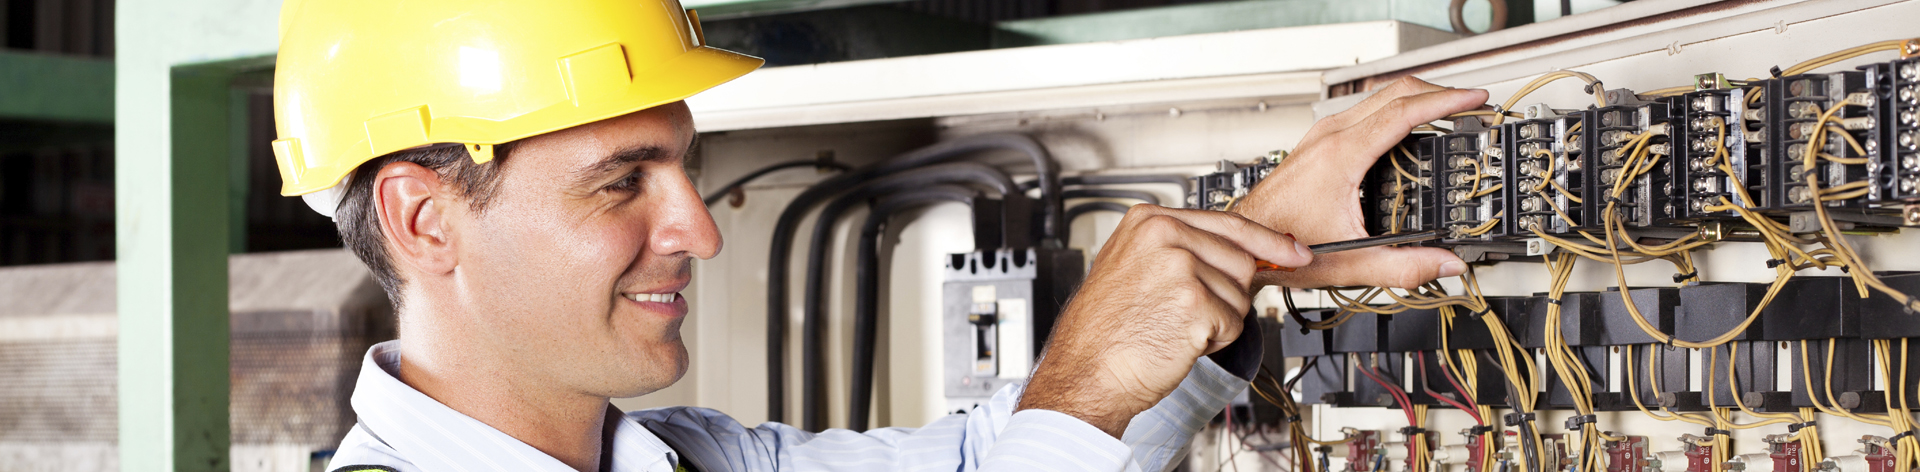 Commercial Electrician - Commercial Electrical Services